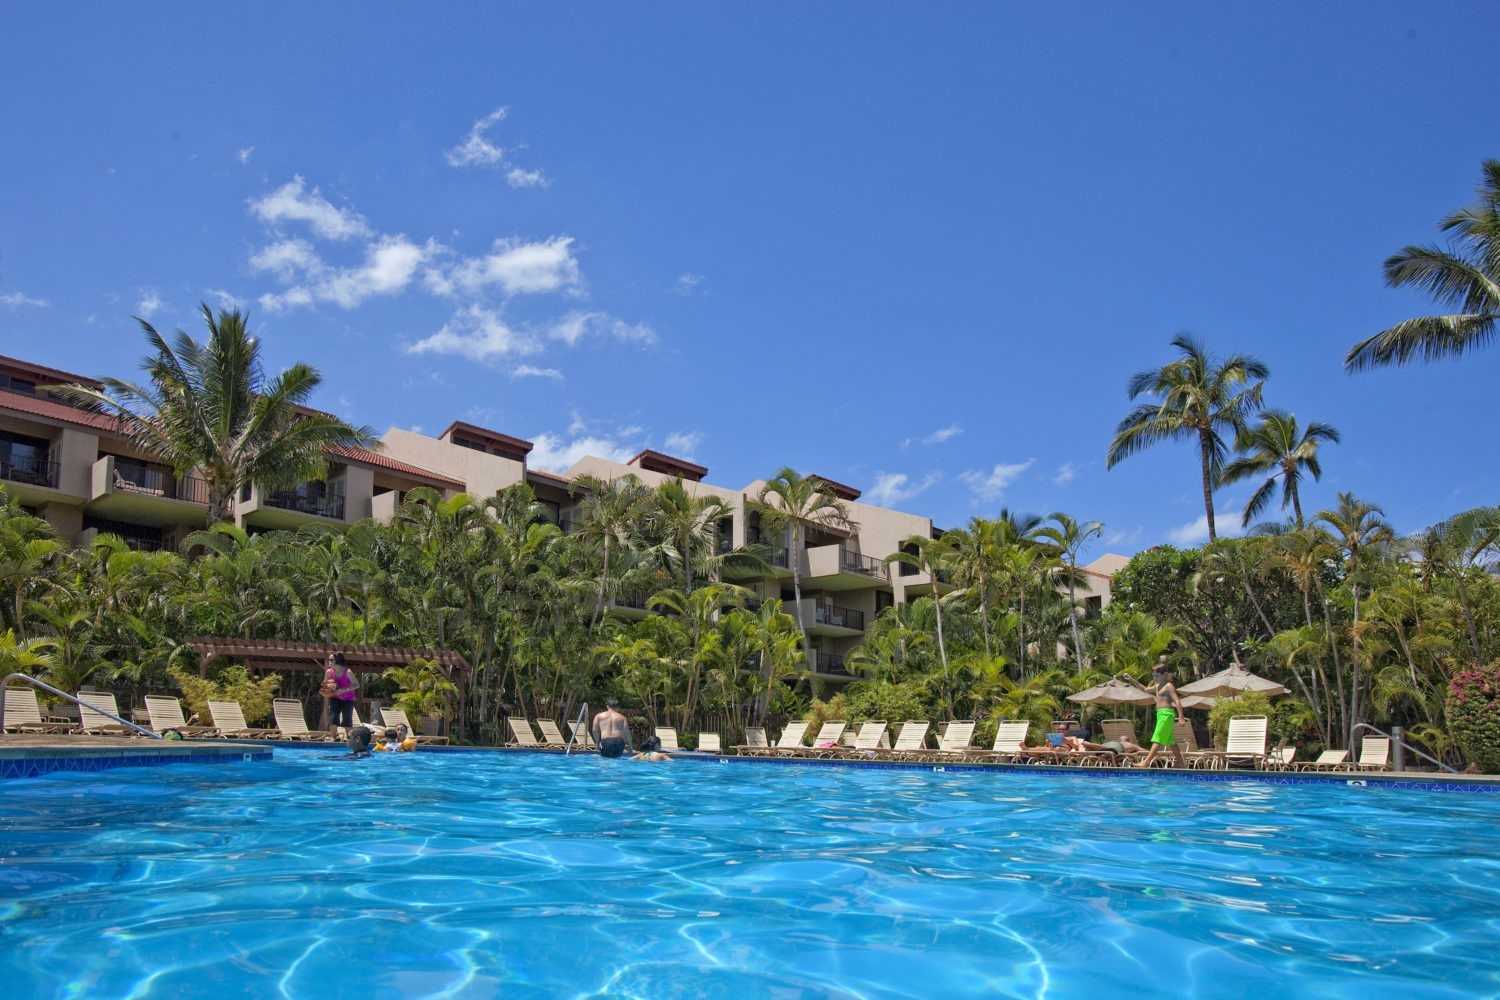 Affordable Condo Rental and Hotel Rentals in South Kihei